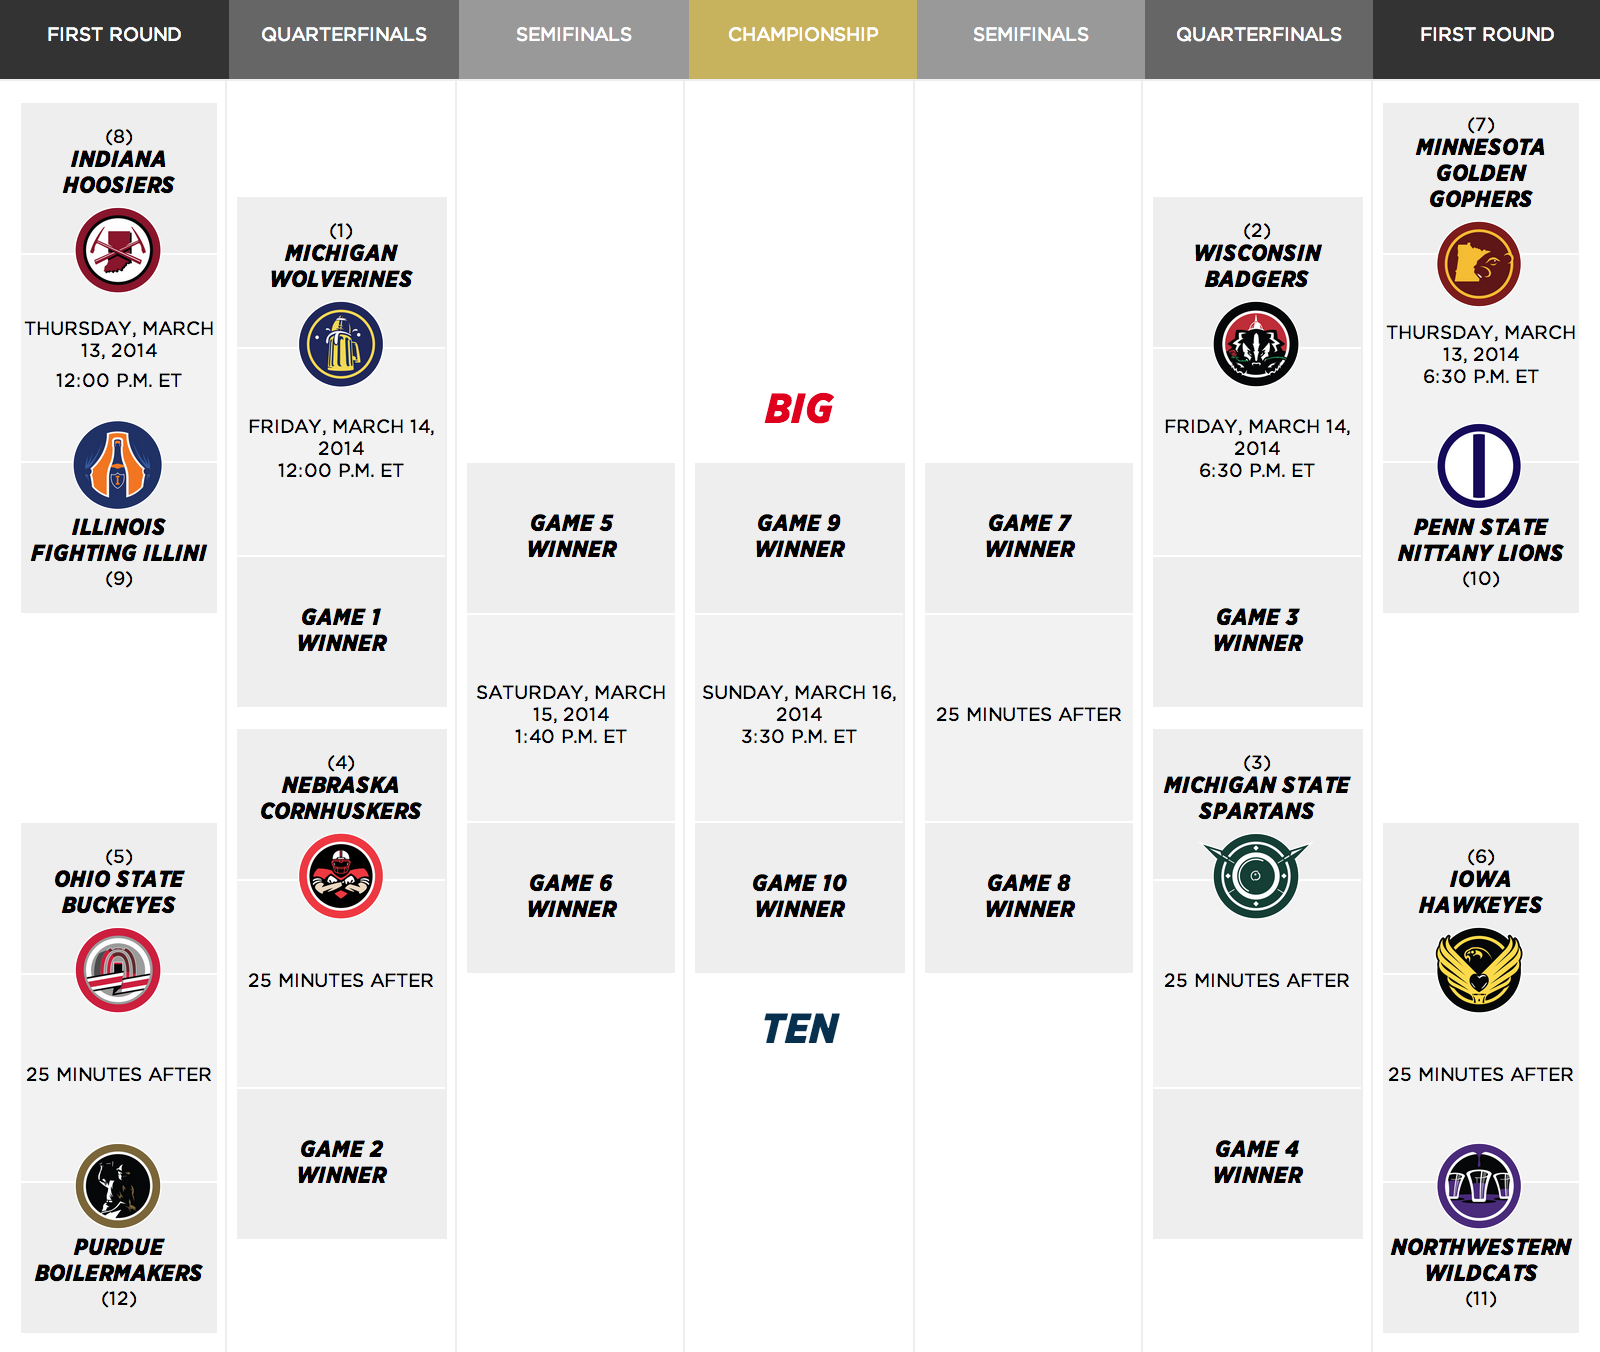 http://cdn1.sbnation.com/assets/4114807/2014-big-ten-tournament-bracket.png